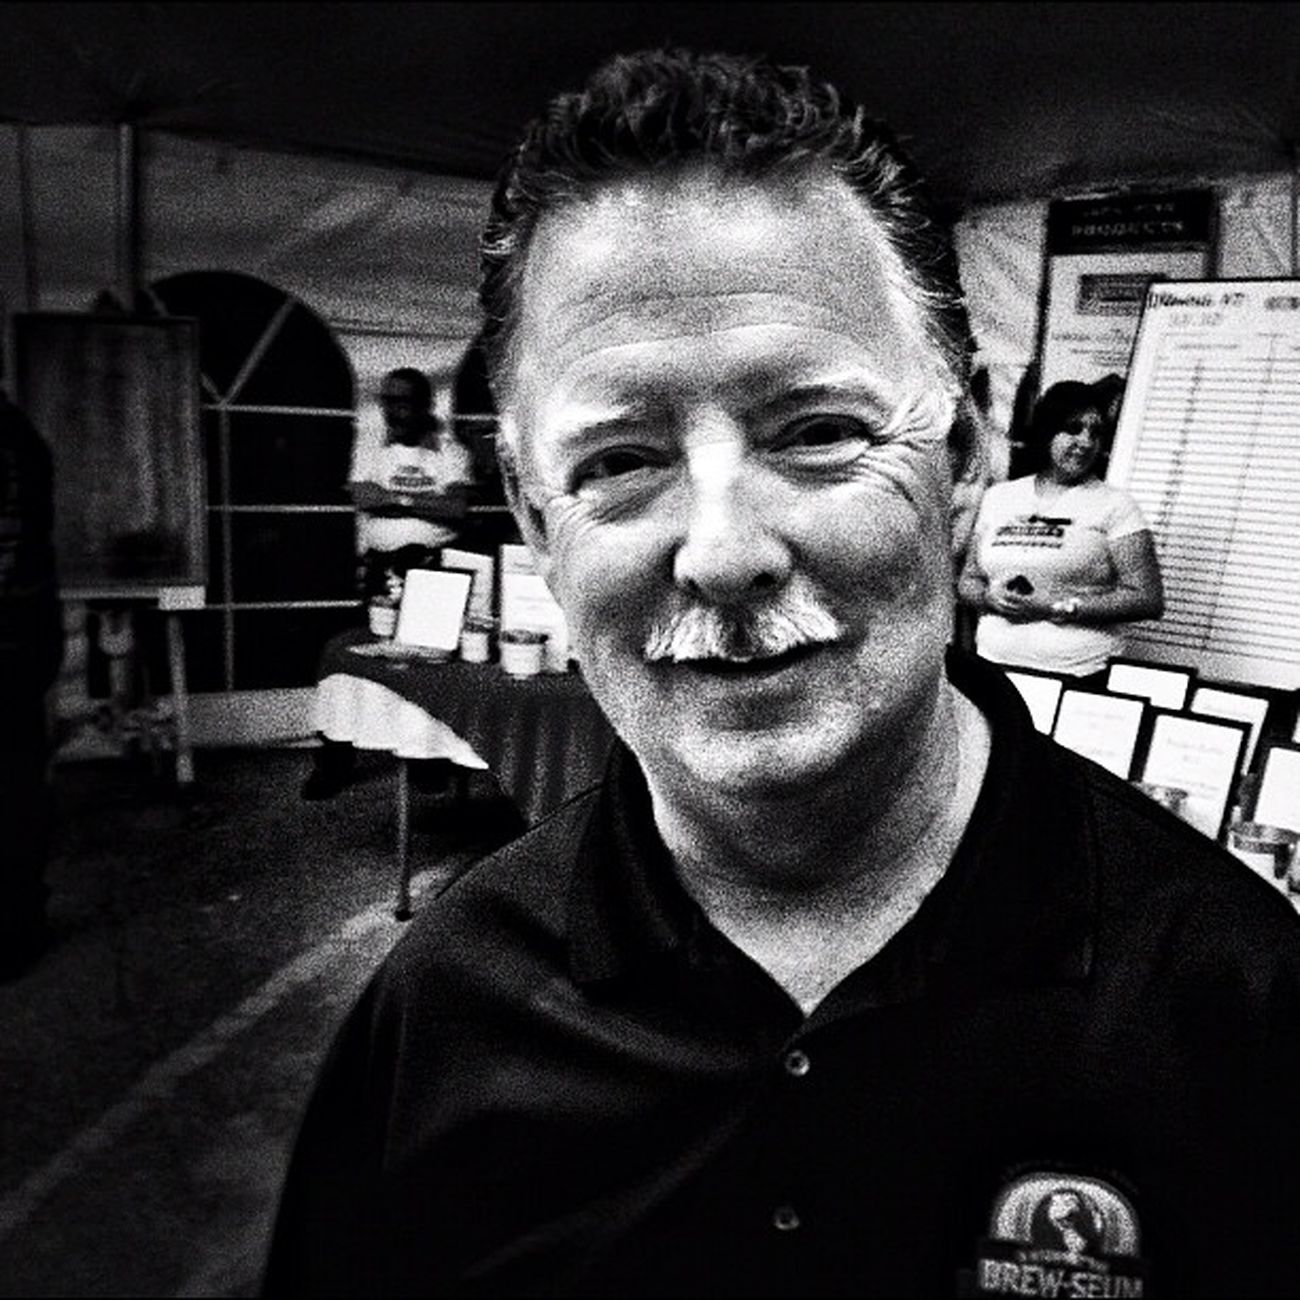 Tim the local weather man and Brewseum Master Blackandwhite Mcallen Rgv Brewseum People